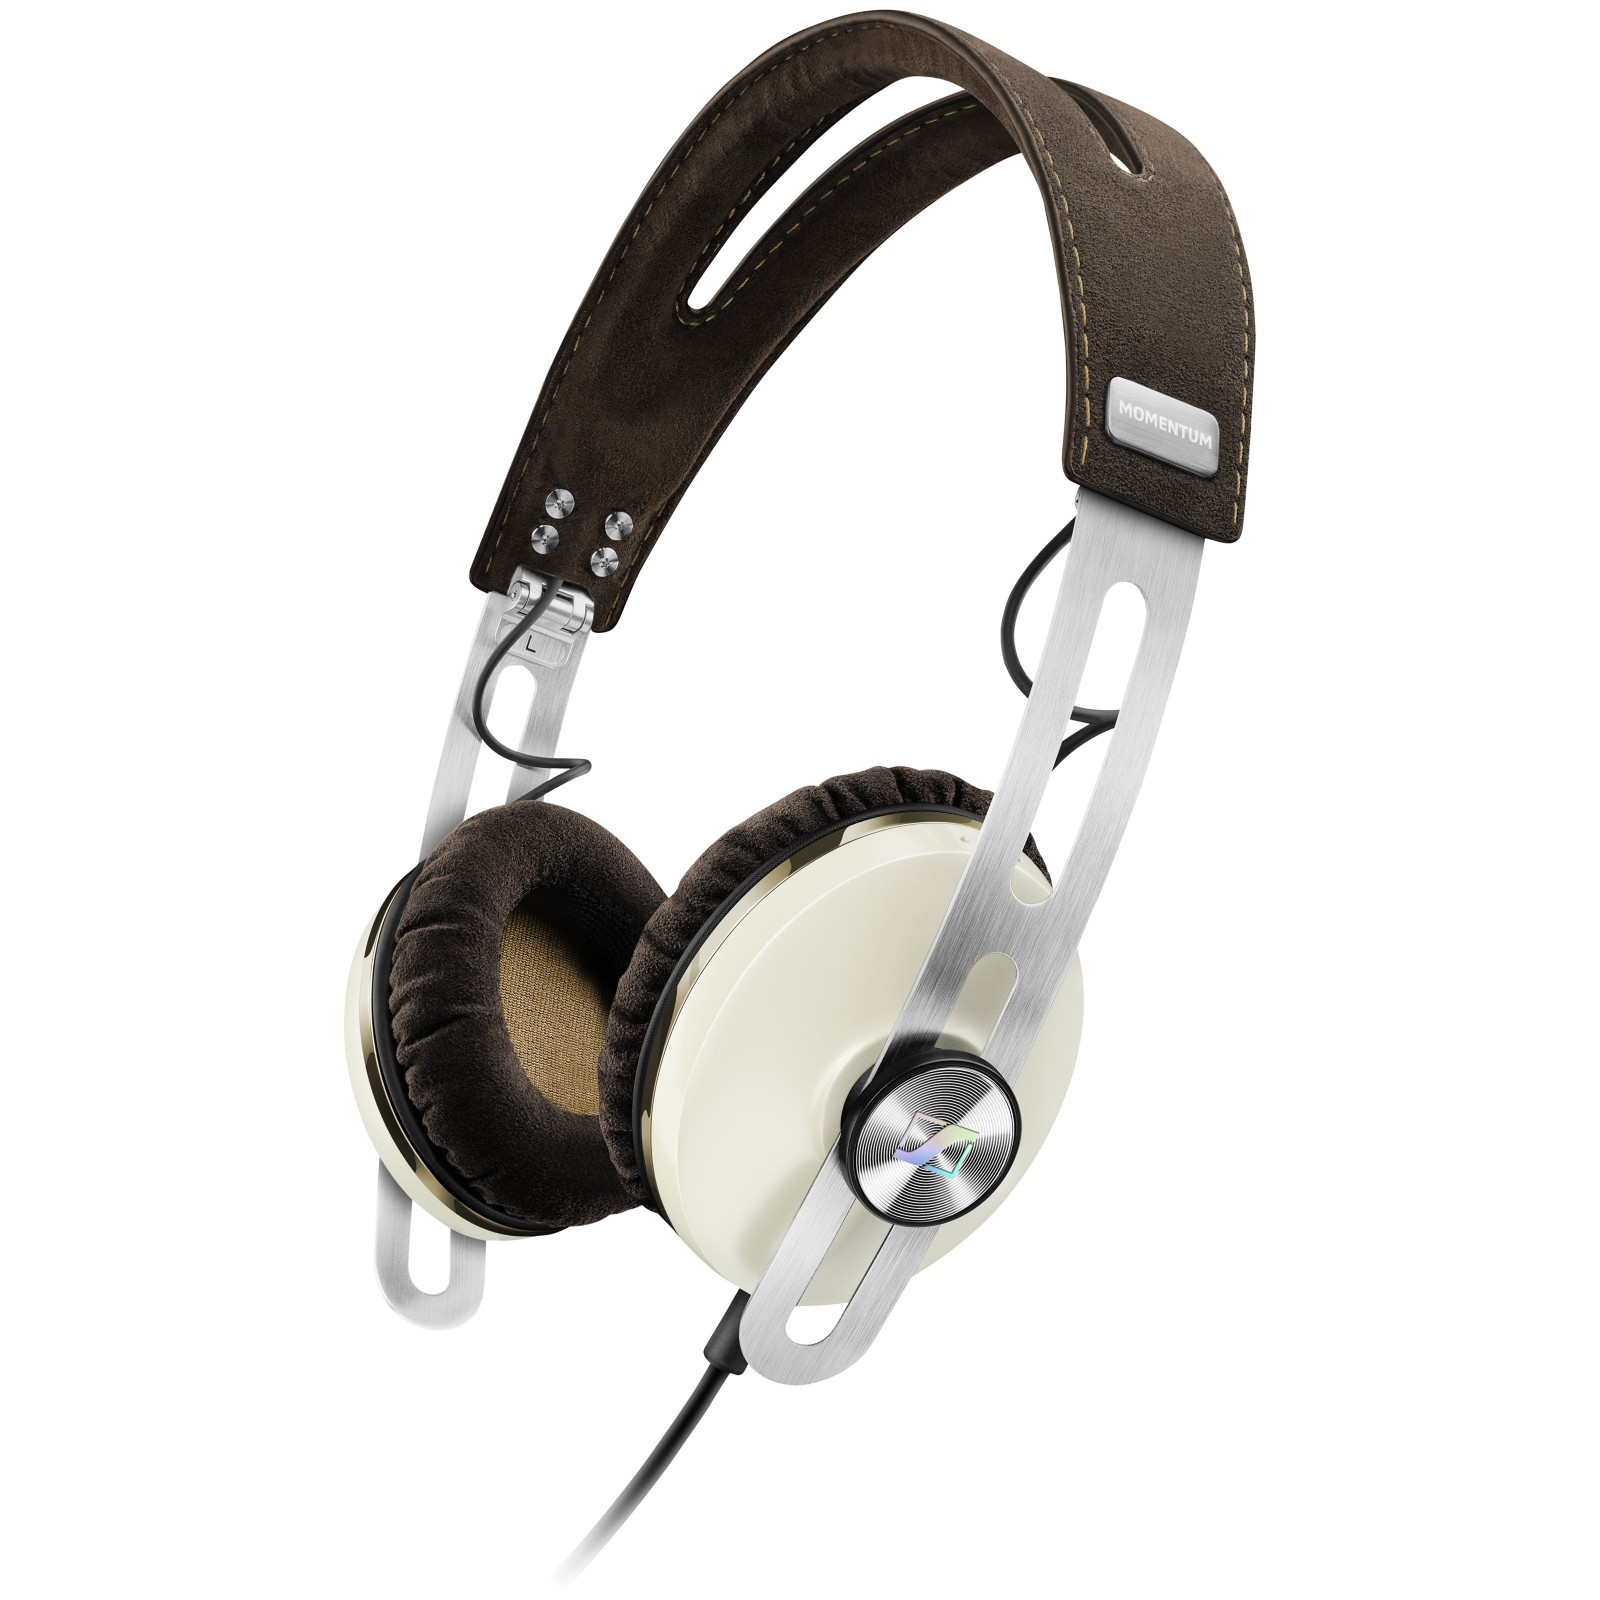 Sennheiser Momentum 2.0i On-Ear Headphones with Mic/remote for Apple devices Ivory